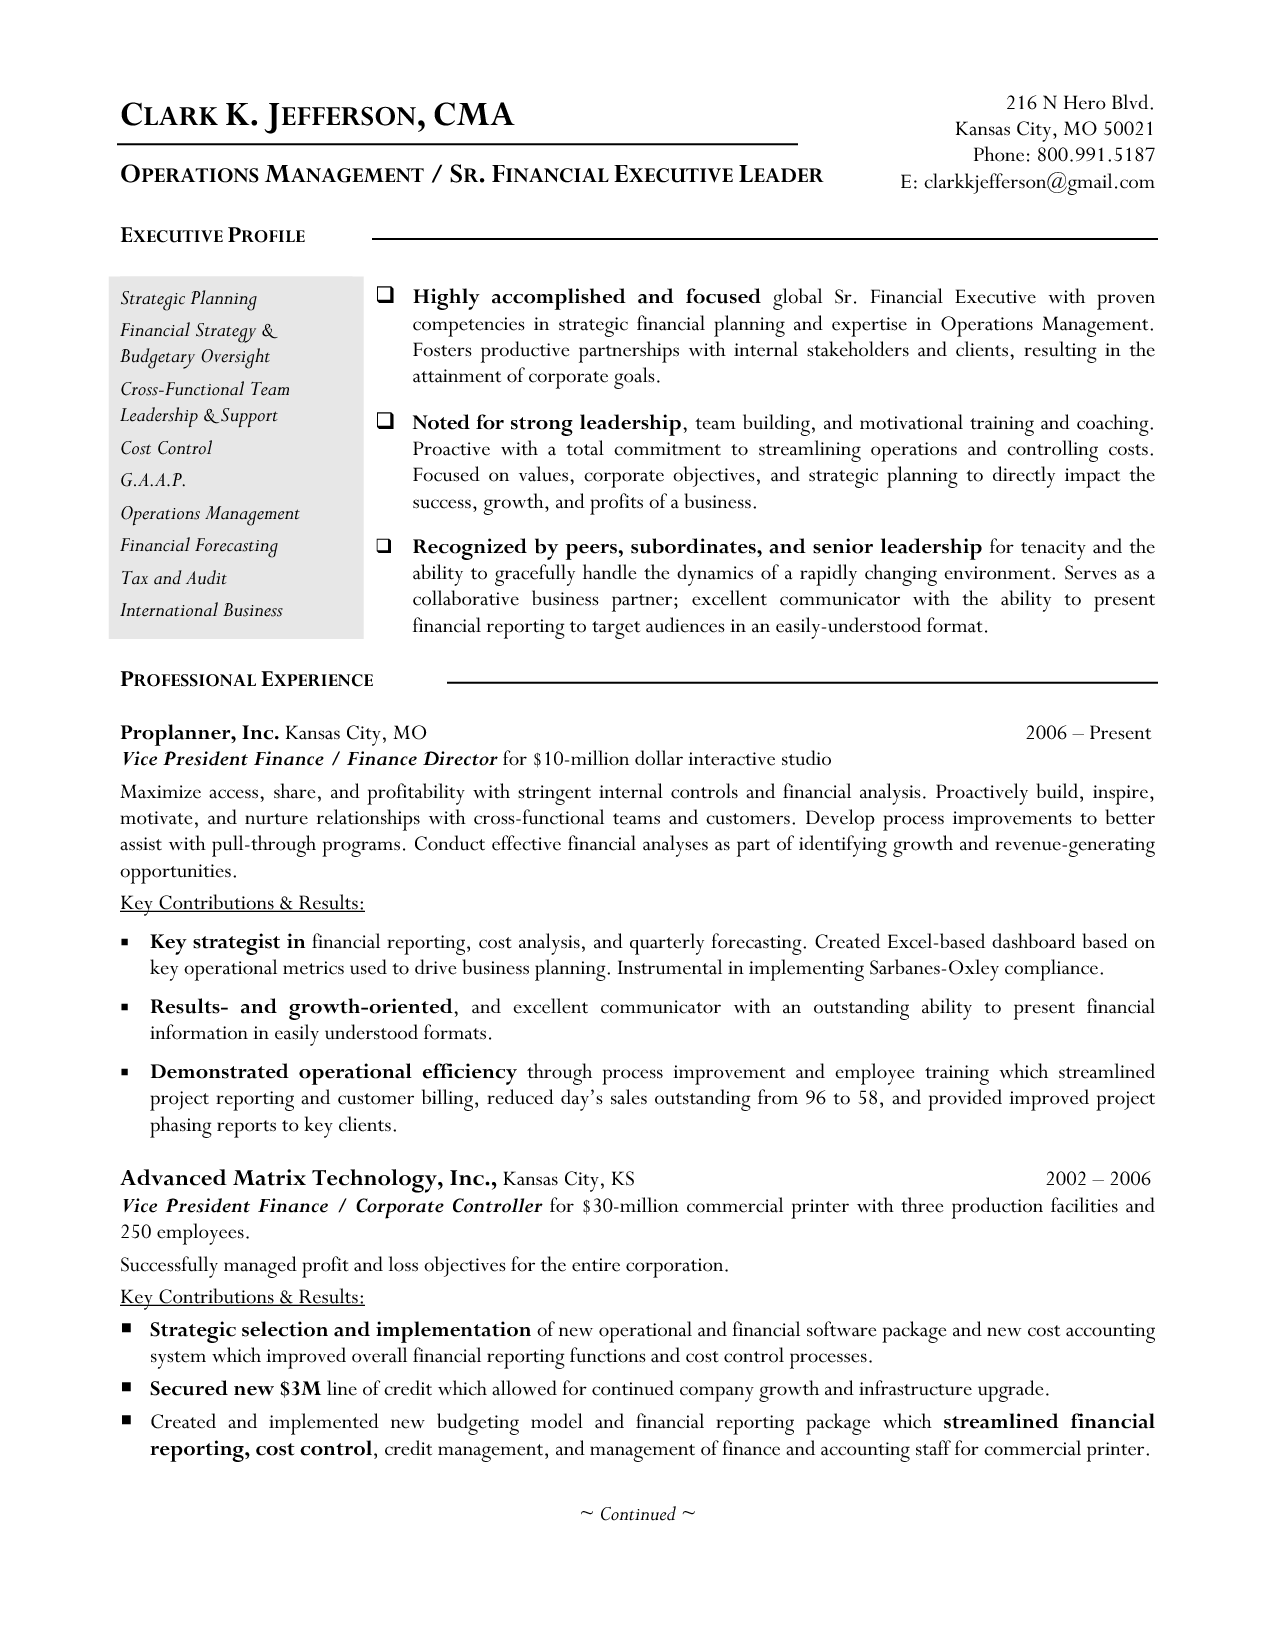 Resume Printable Operations Management With Strategic Planning With Clark K Jefferson Finance Manager Resume Png 1275 16 Manager Resume Resume Examples Resume